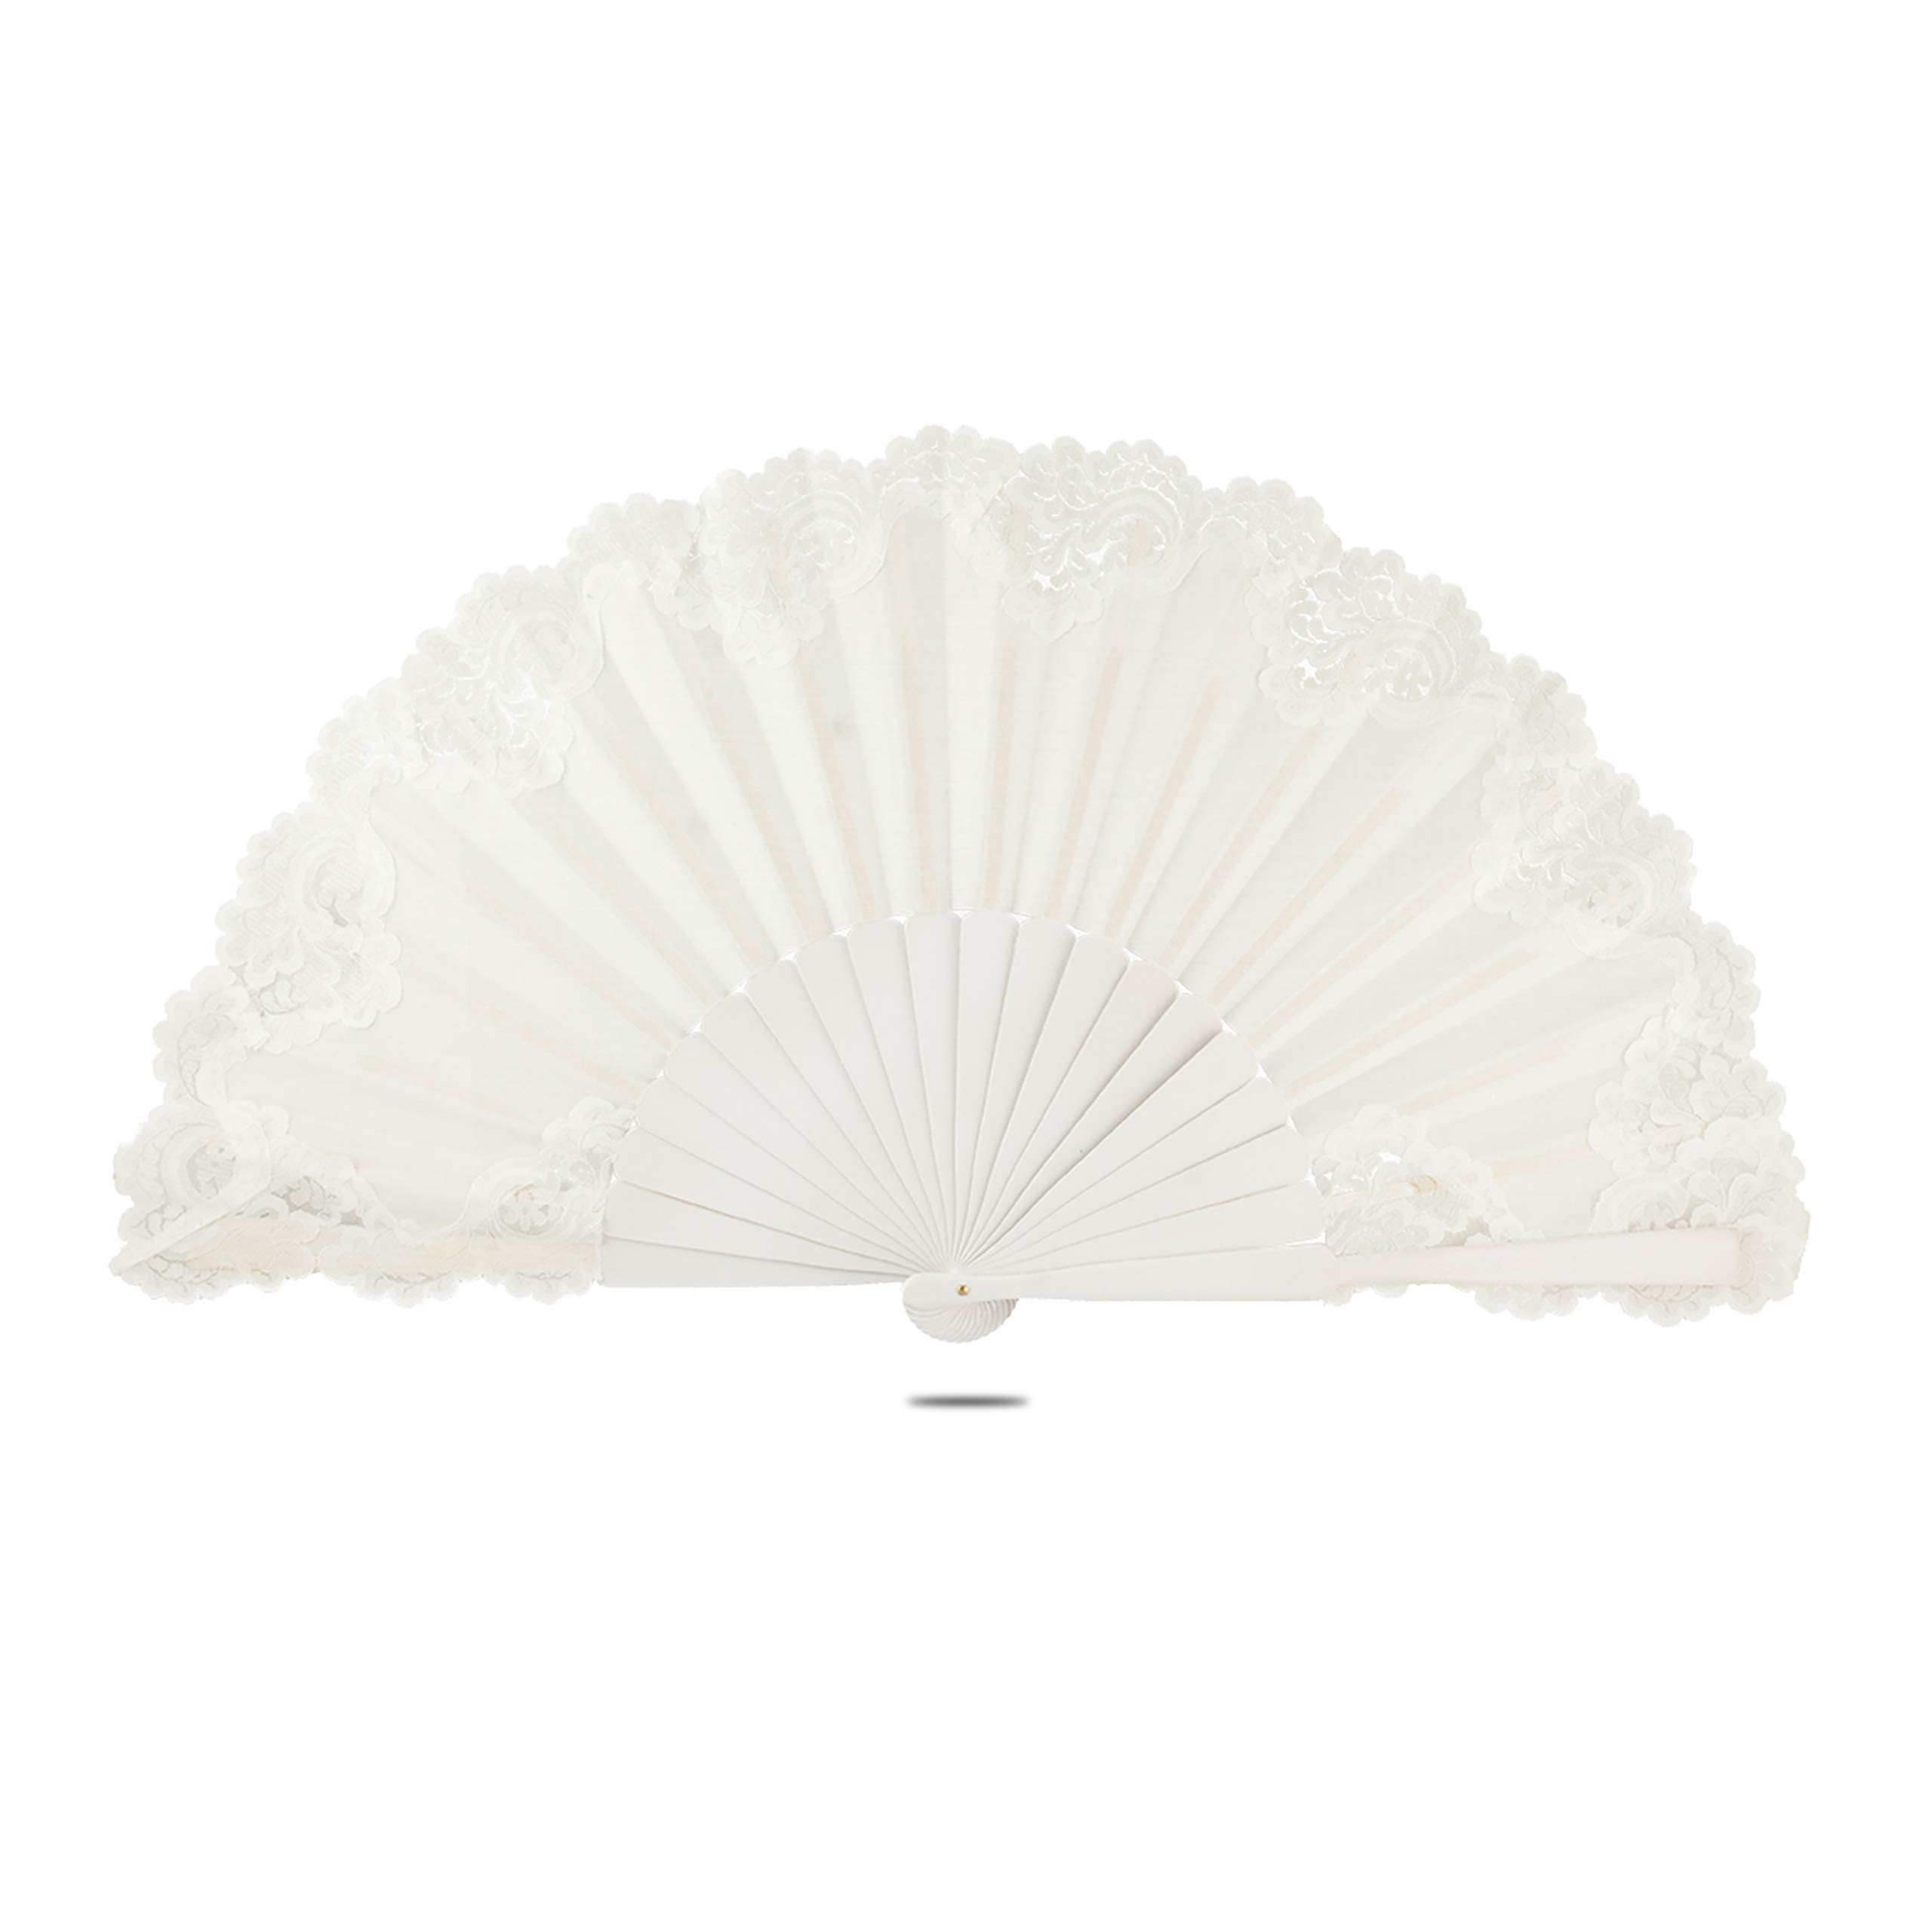 Ole Ole Flamenco Spanish Hand Fan Pericon with lace Large 13 inch 33 cm Handmade Made of Wood and Fabric Abanicos Españoles White with White Lace by Ole Ole Flamenco